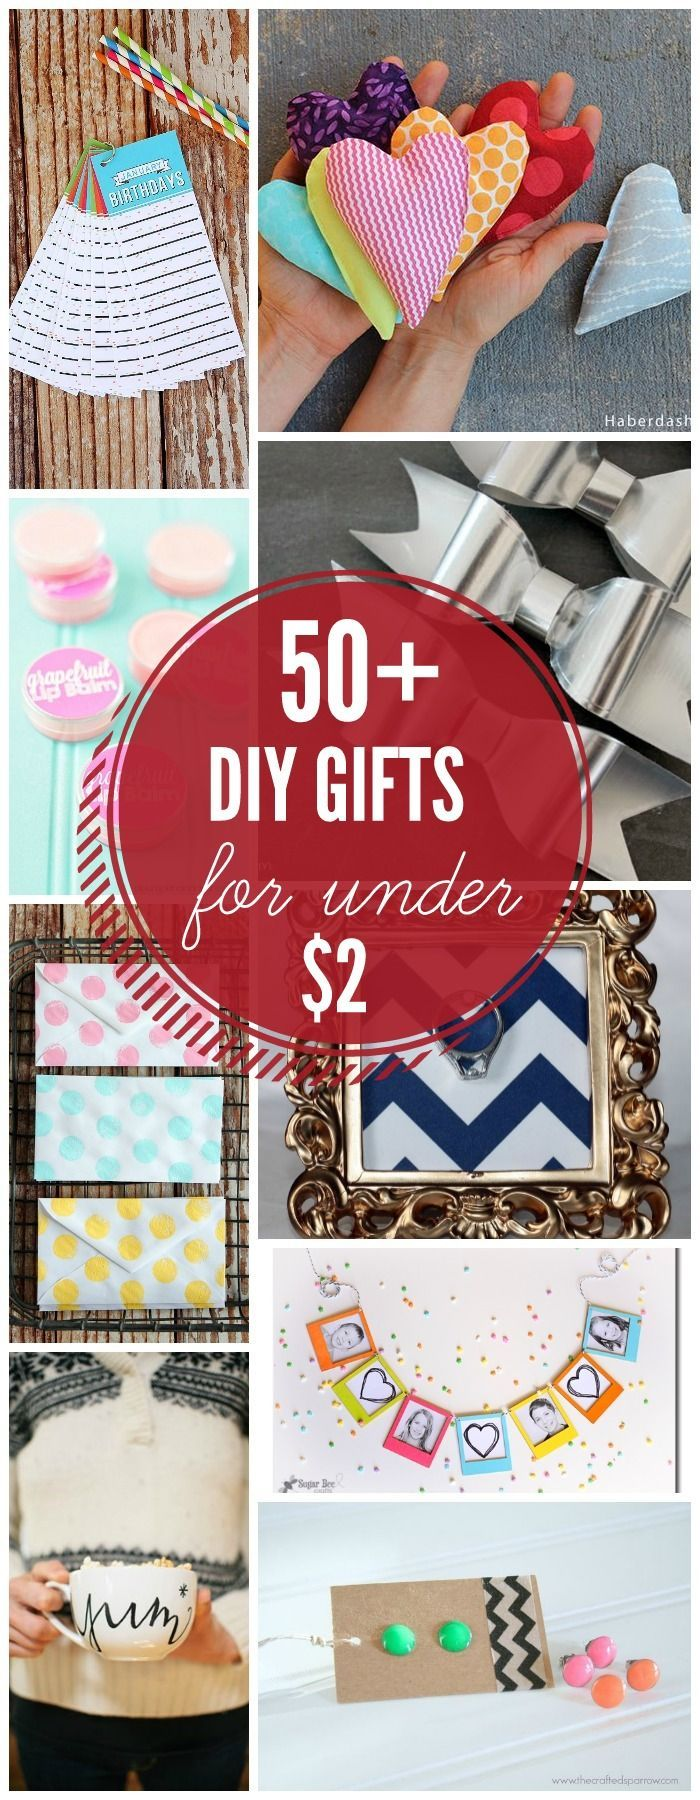 Diy Amazing and Quick Christmas Ideas 10